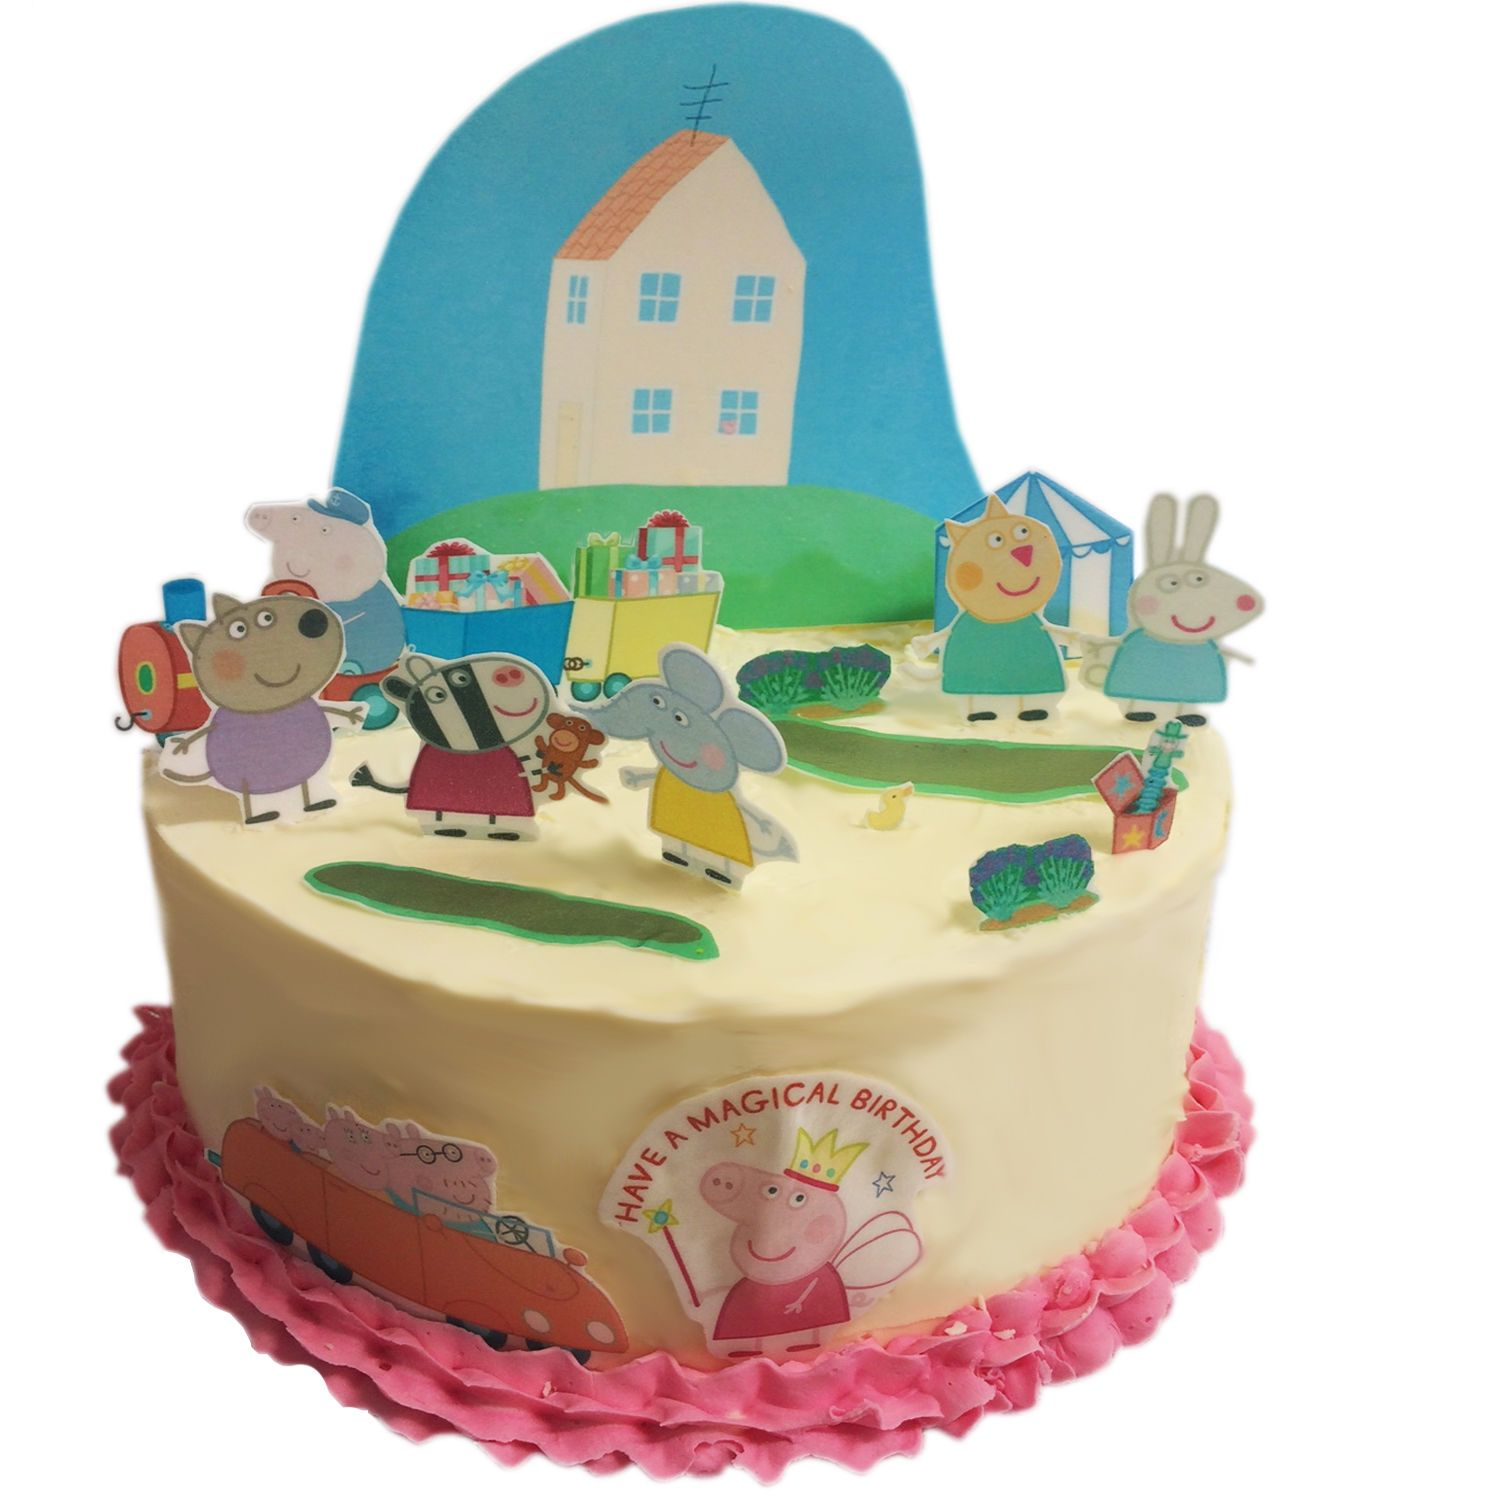 Edible Cake Decorations Woolworths : Peppa Pig Edible Wafer Card Cake Topper Scene